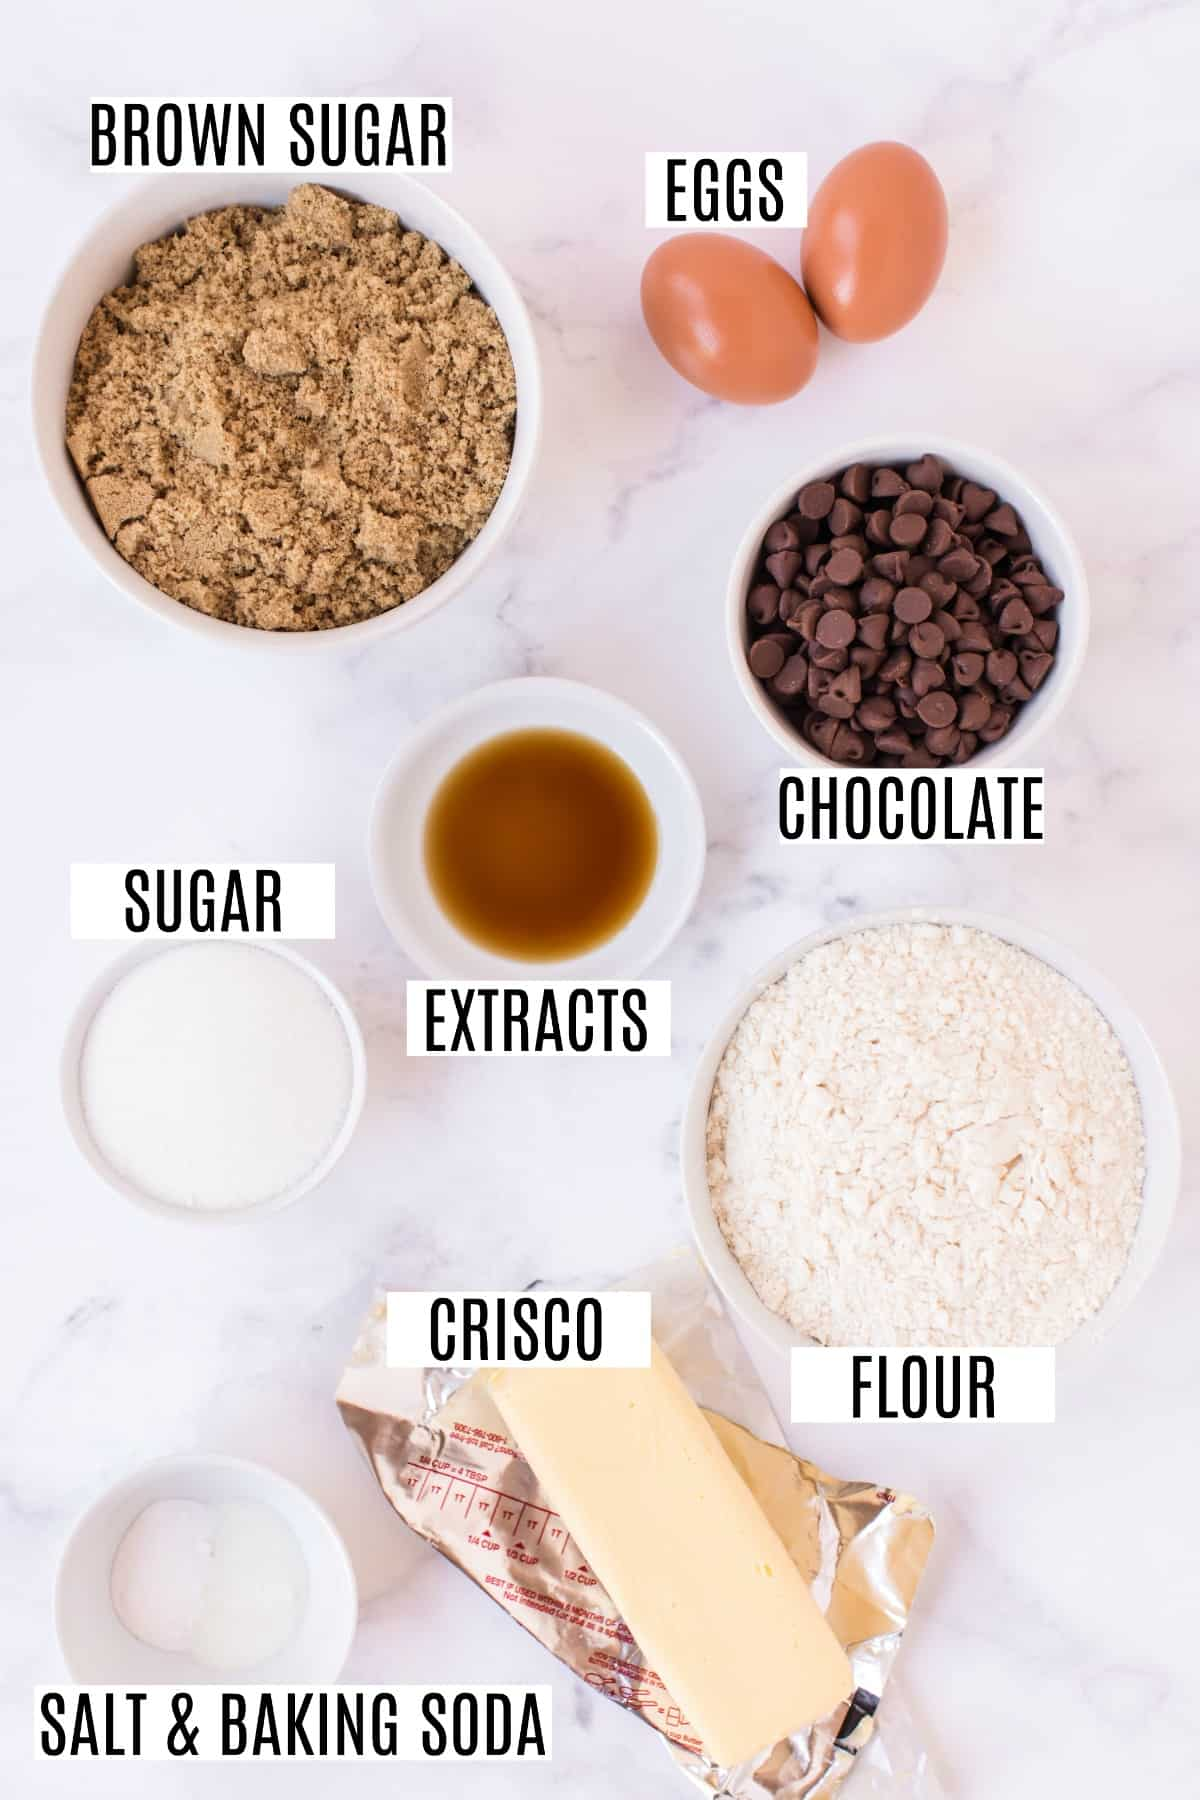 Chocolate chip cookie recipe ingredients.